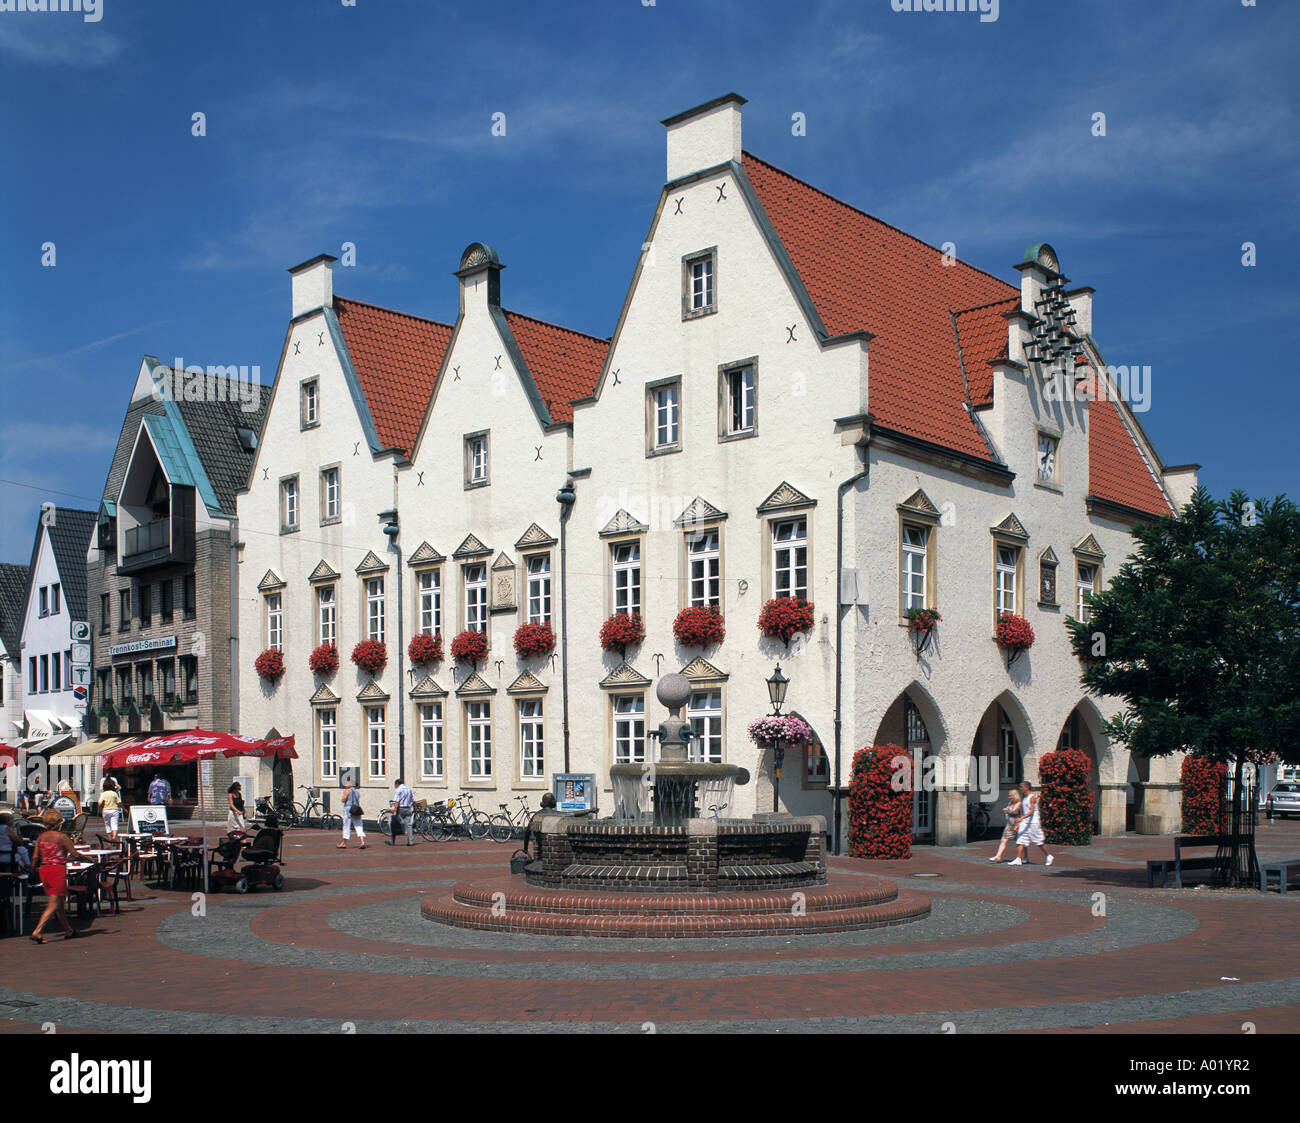 marktplatz mit rathaus und marktbrunnen in haltern am see lippe stock photo 5630385 alamy. Black Bedroom Furniture Sets. Home Design Ideas